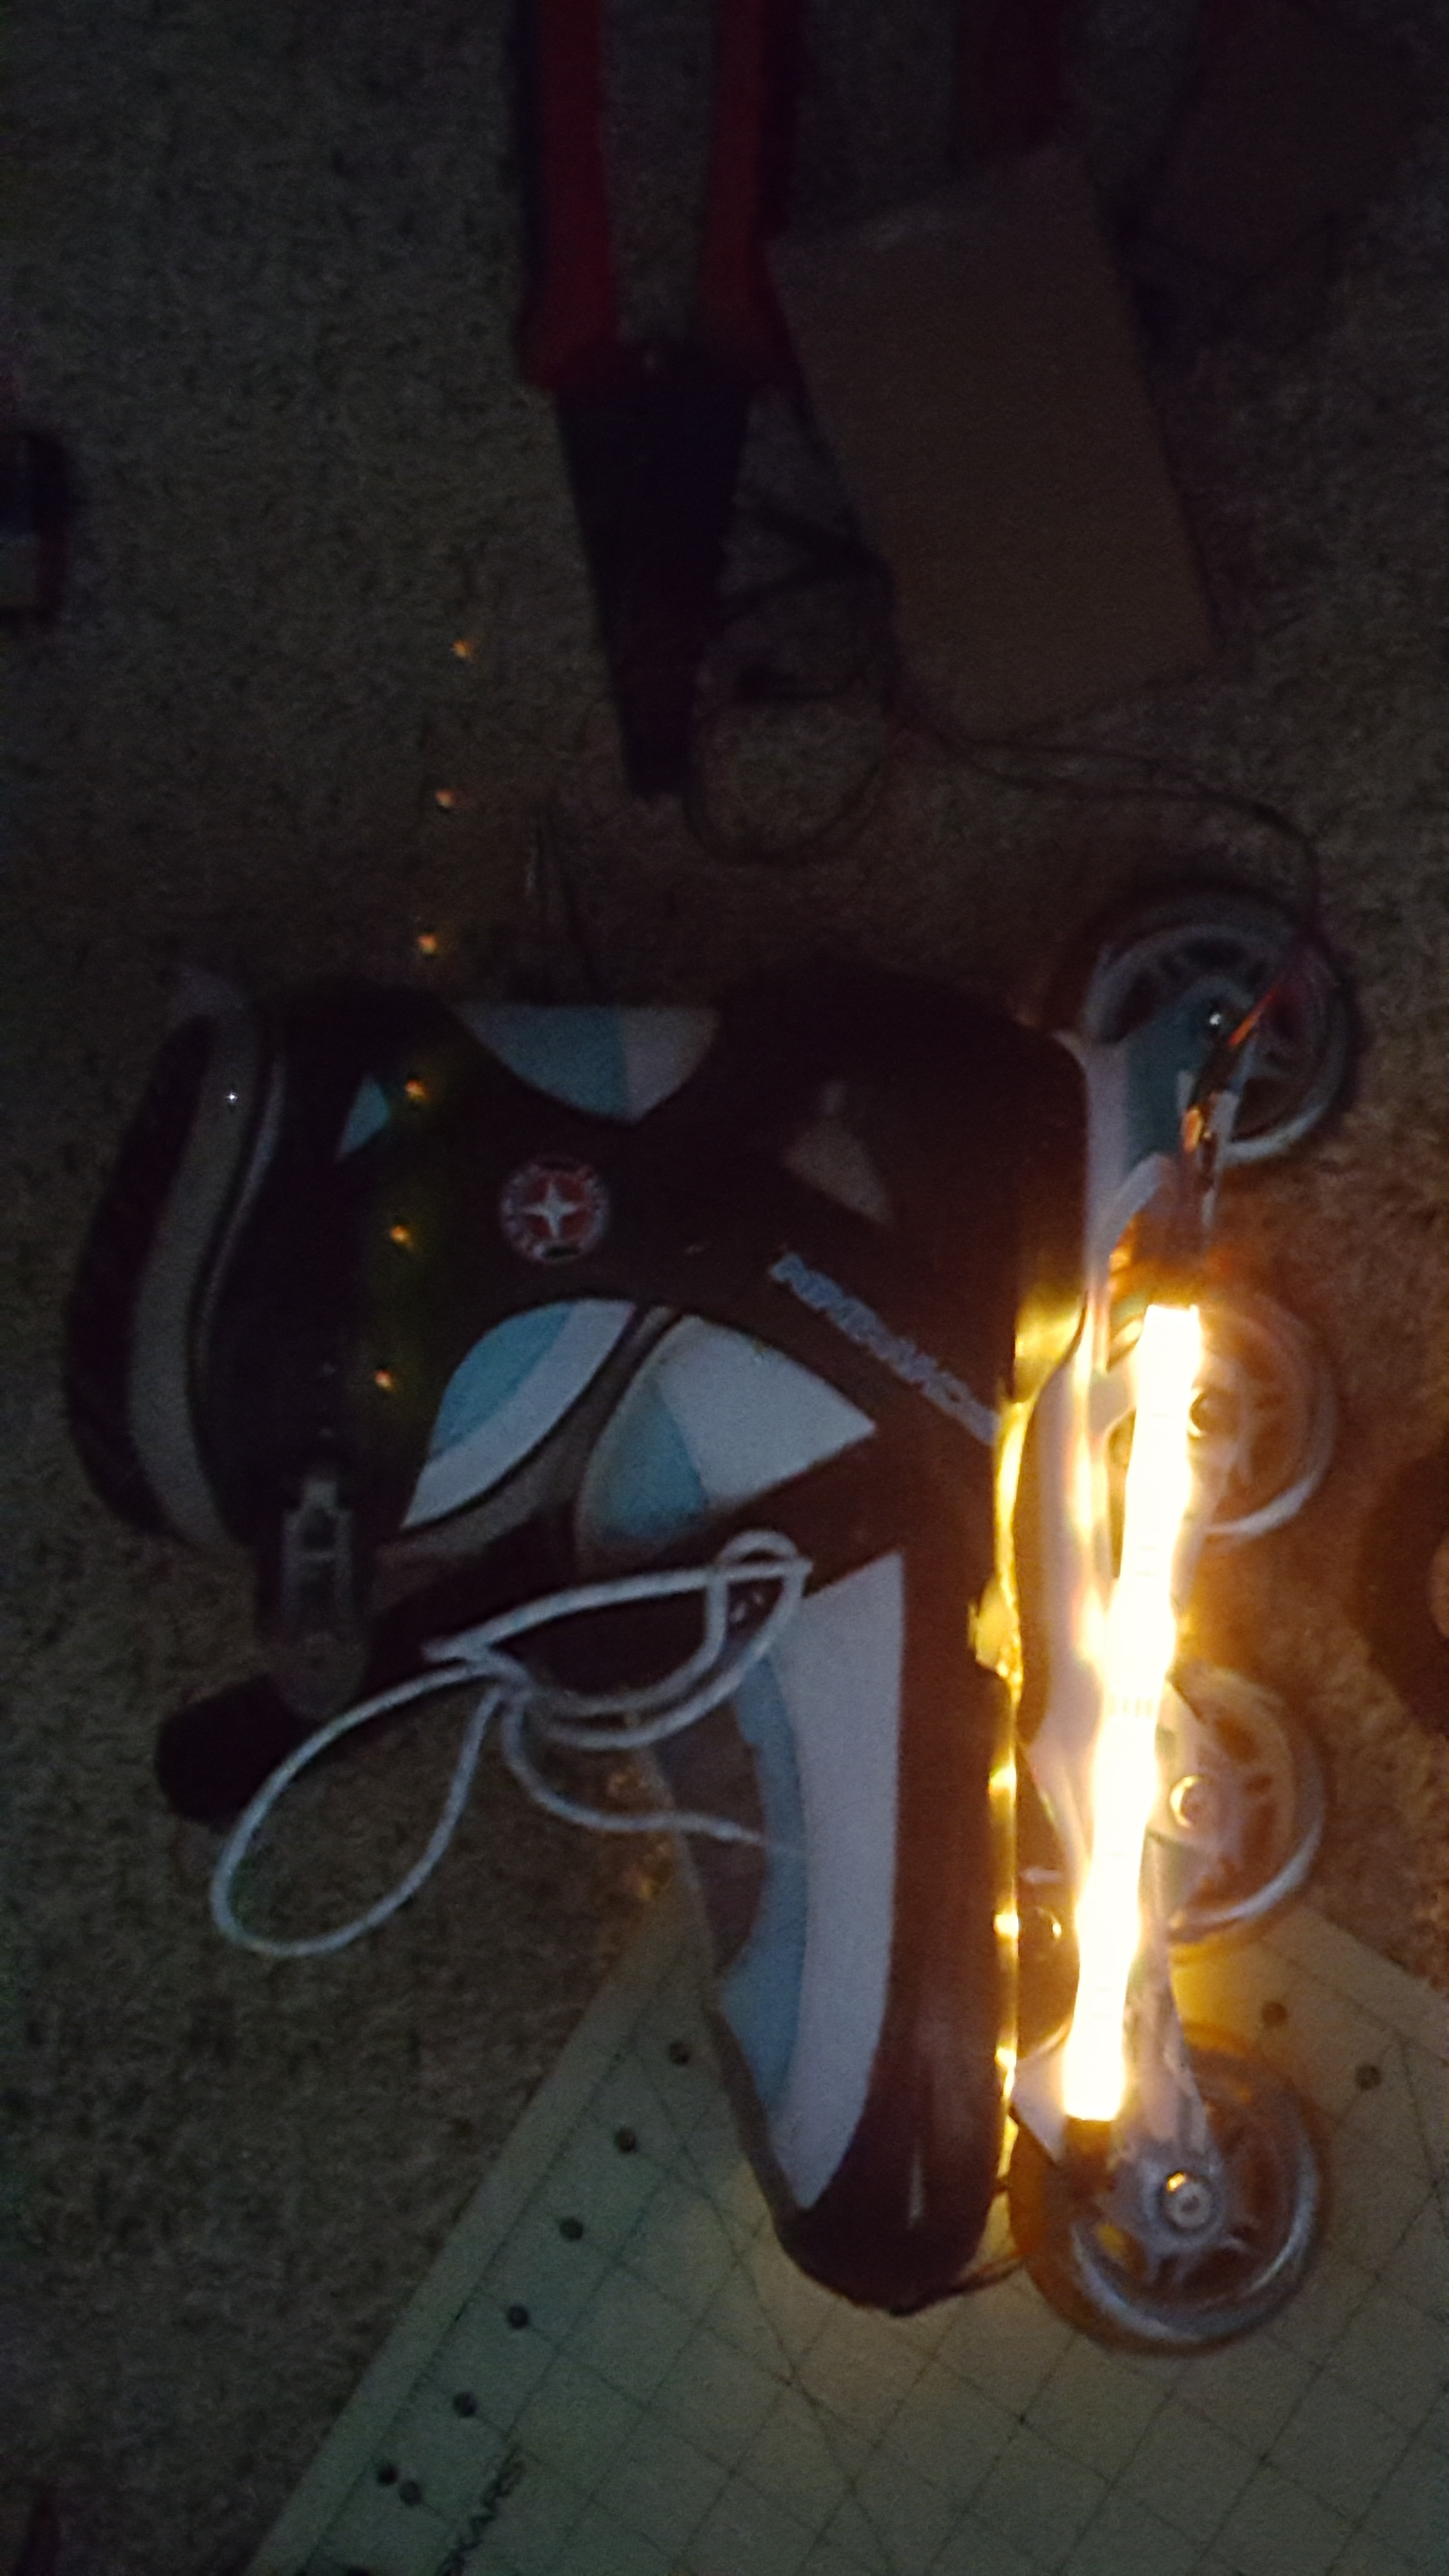 Picture of LED Inline Skates